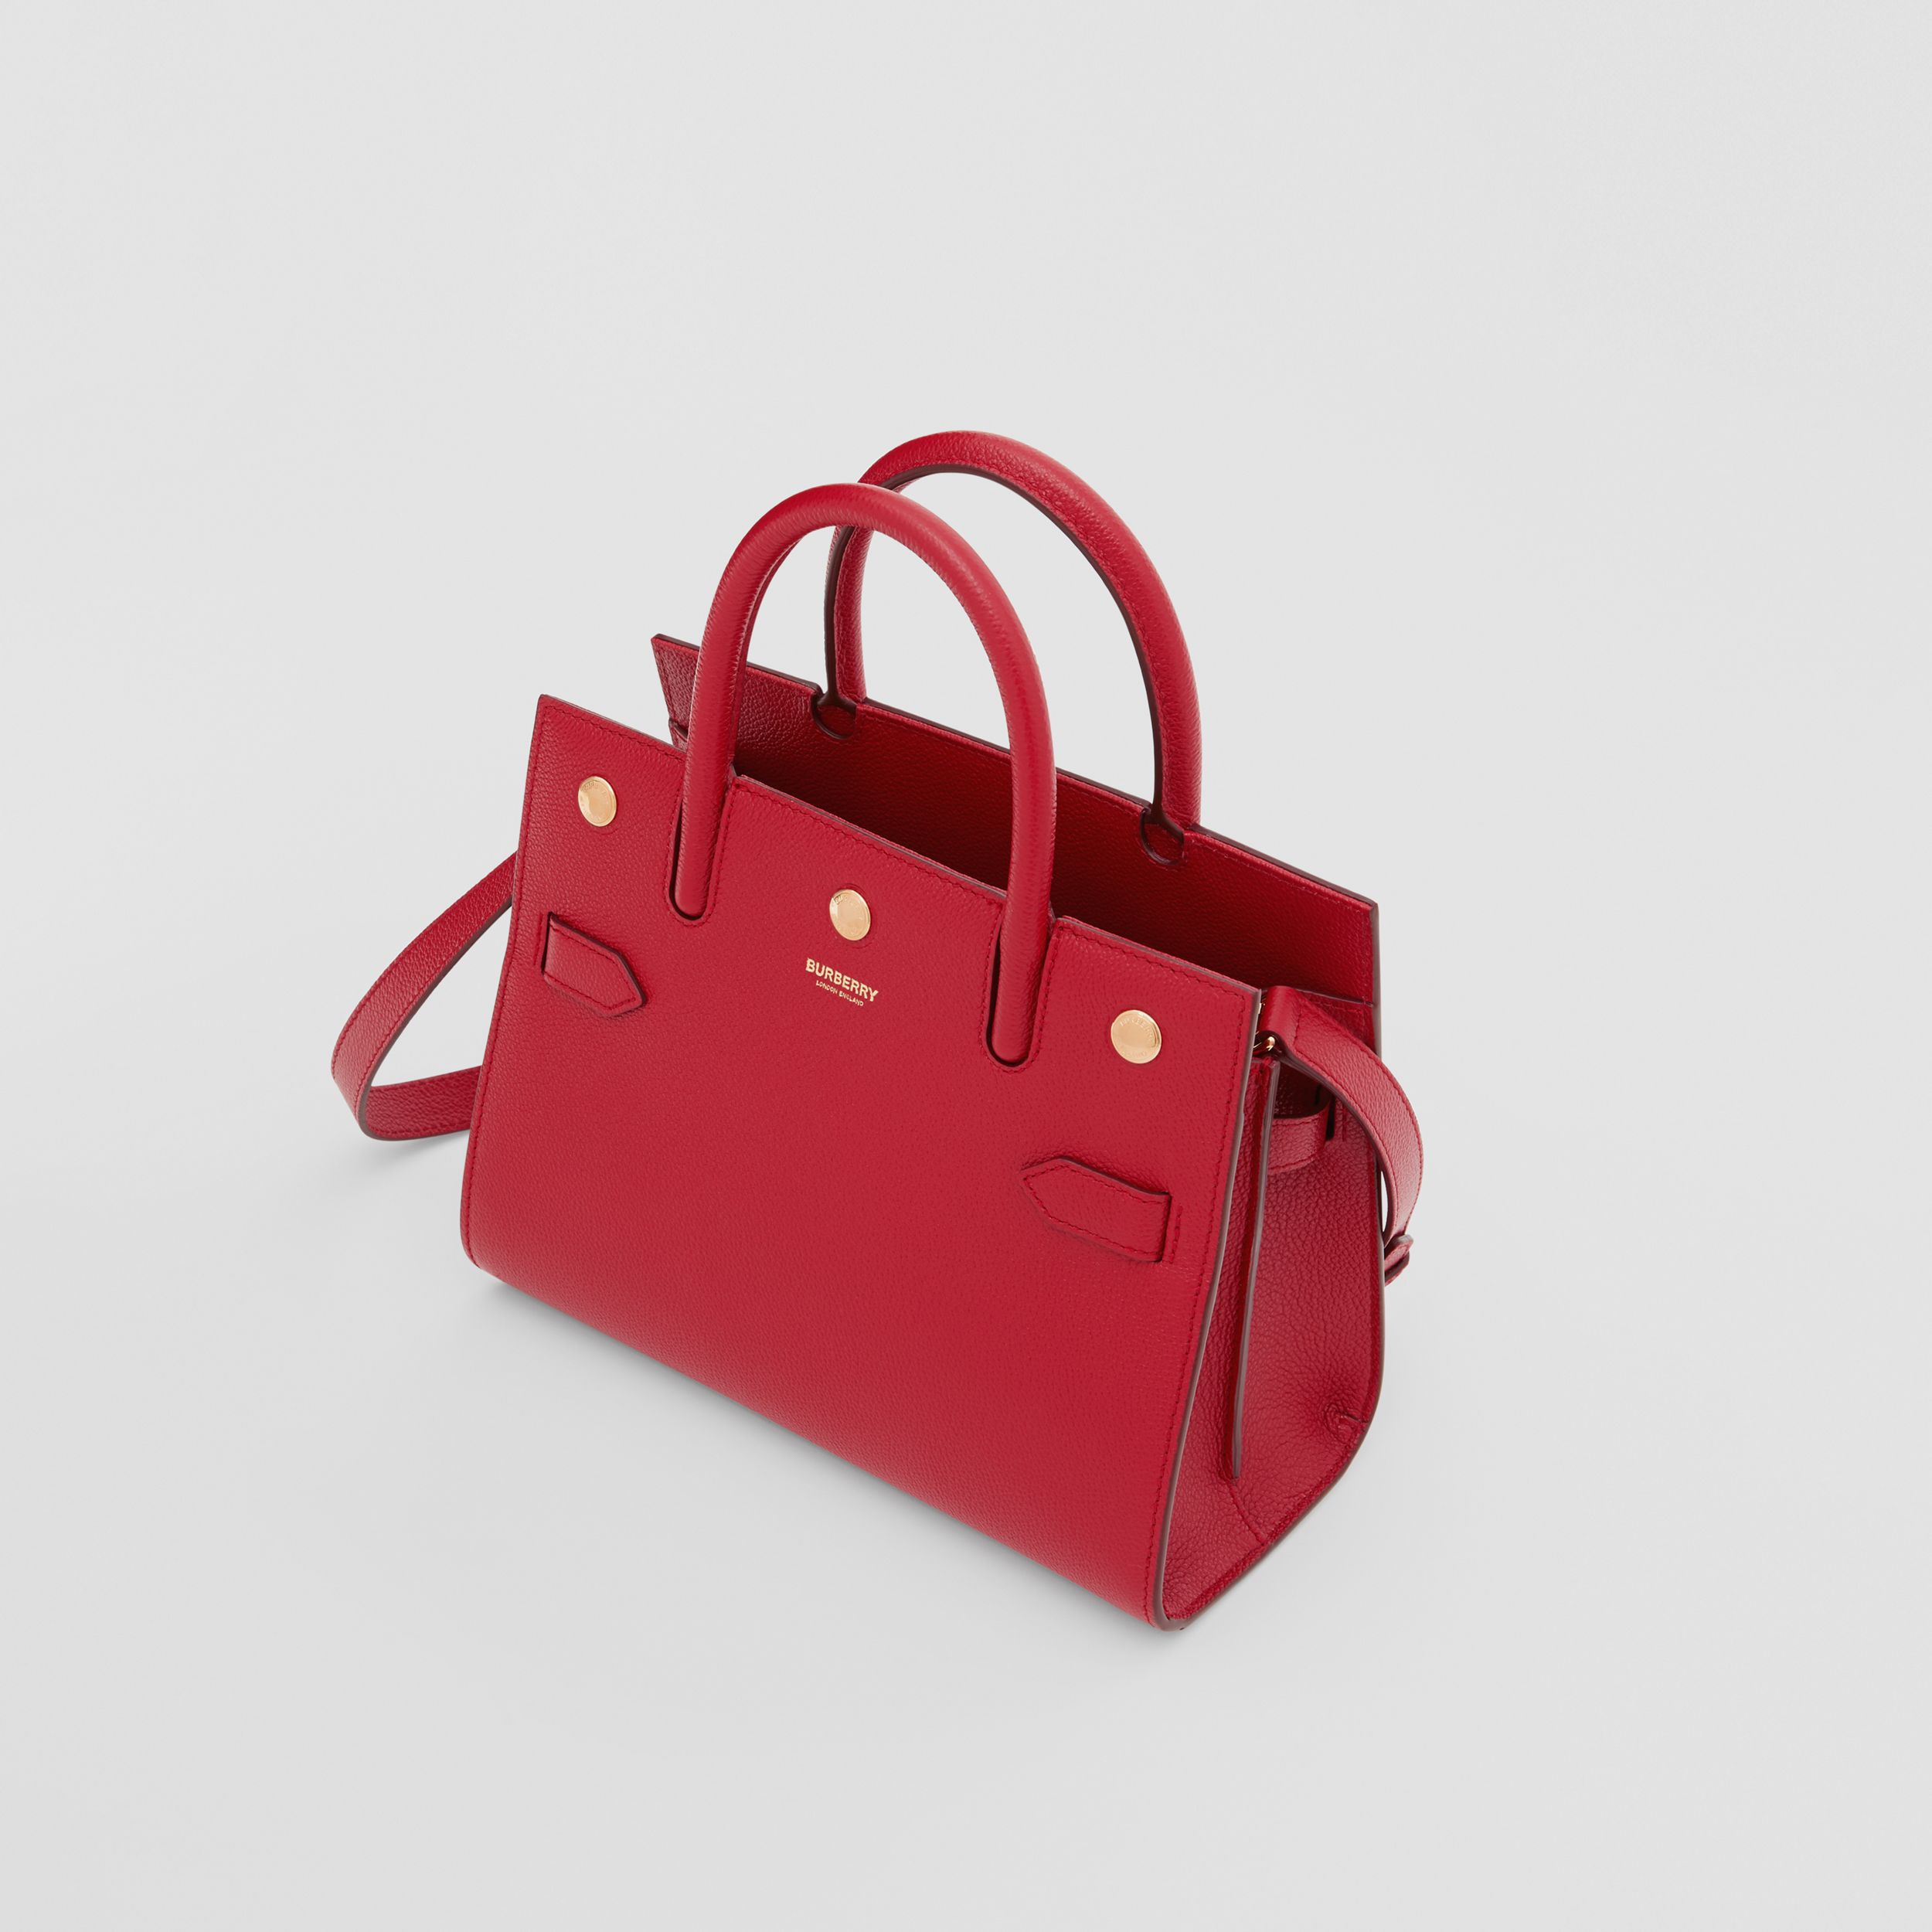 Mini Leather Two-handle Title Bag in Dark Carmine - Women | Burberry - 4